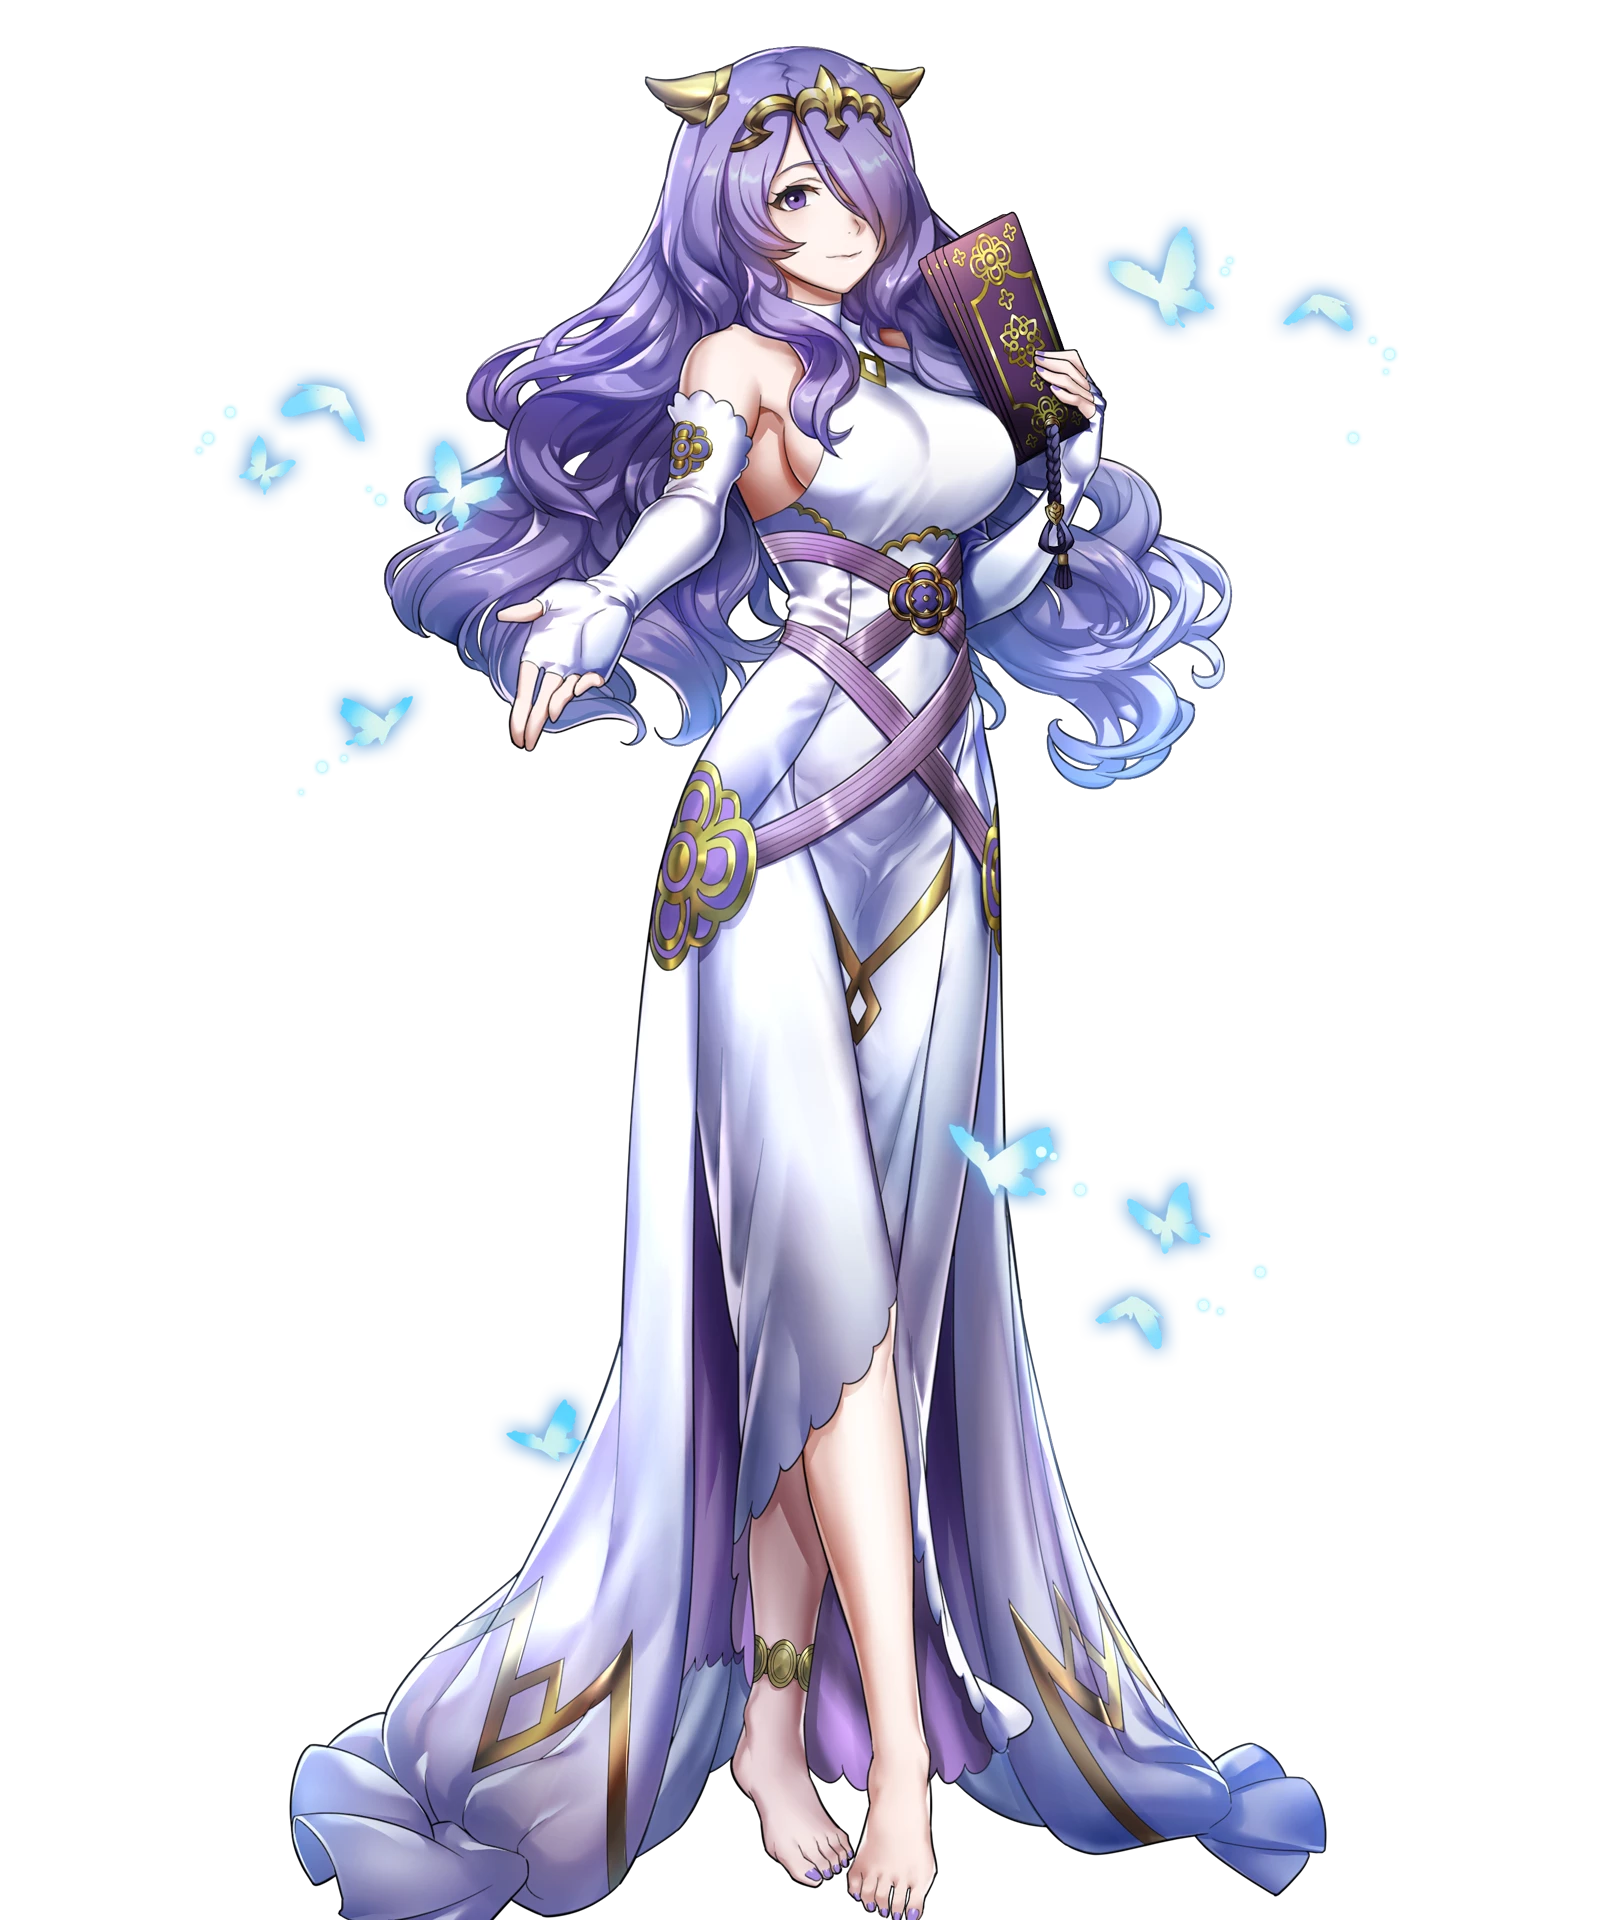 https://static.wikia.nocookie.net/feheroes_gamepedia_en/images/0/0a/Camilla_Flower_of_Fantasy_Face.webp/revision/latest?cb=20190920221438&format=original